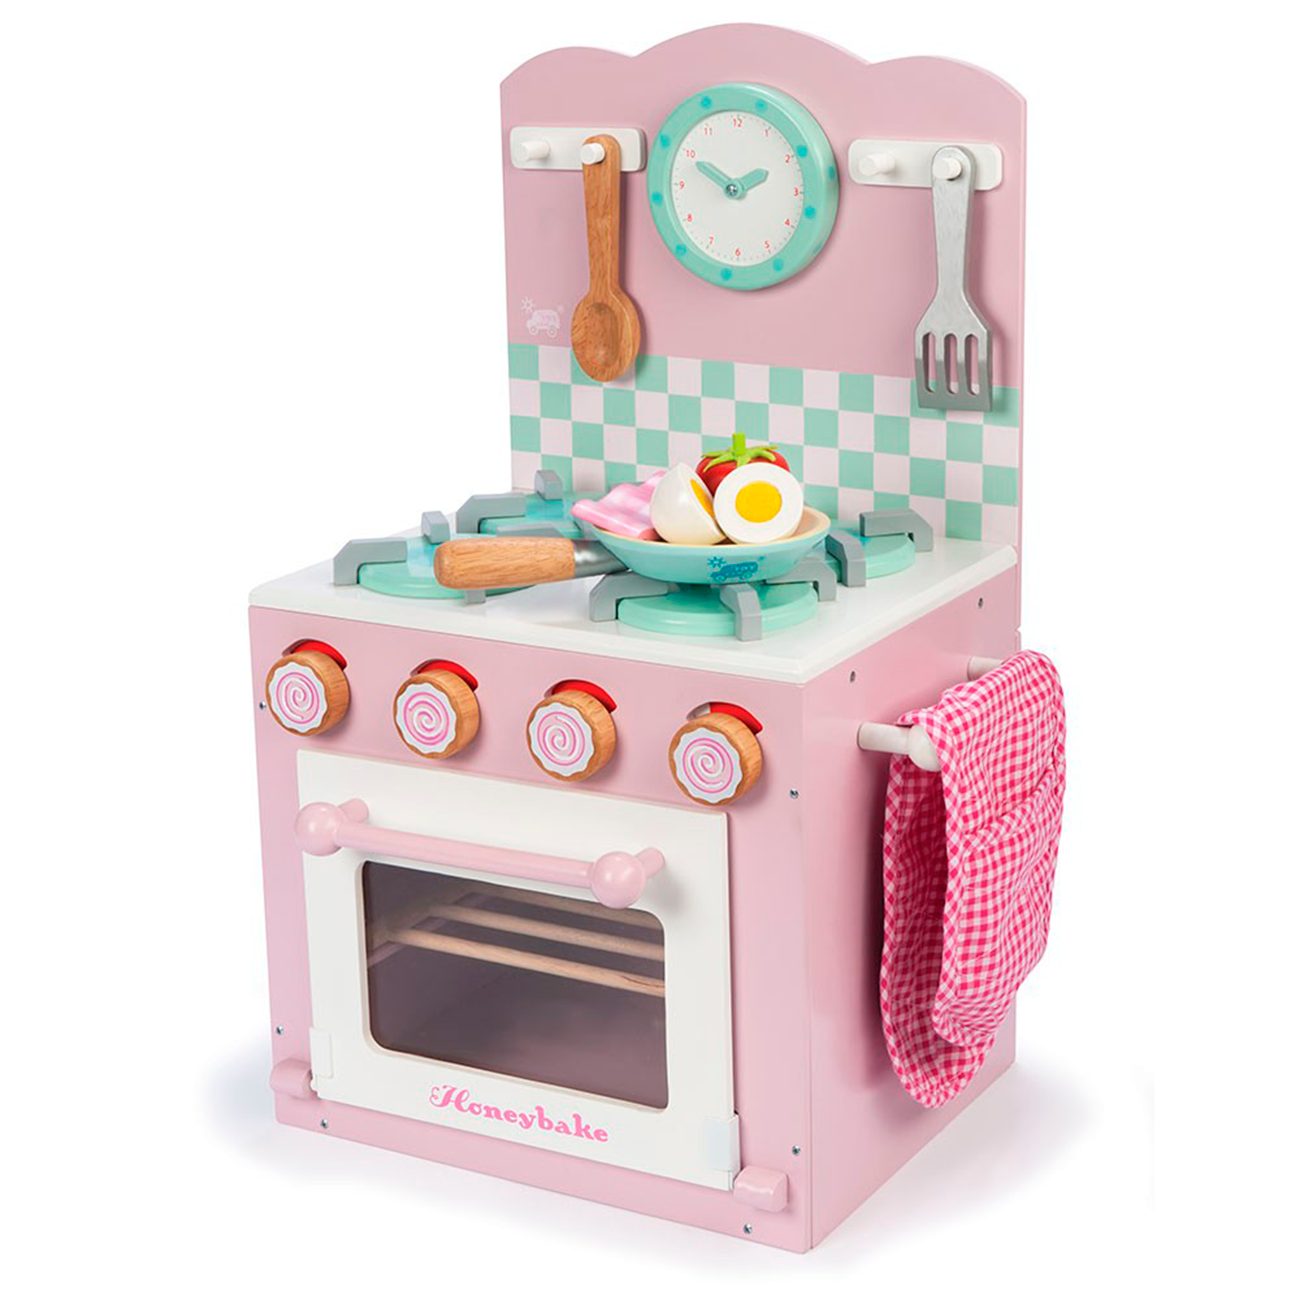 Le Toy Van Honeybake Kitchen Stove Pink